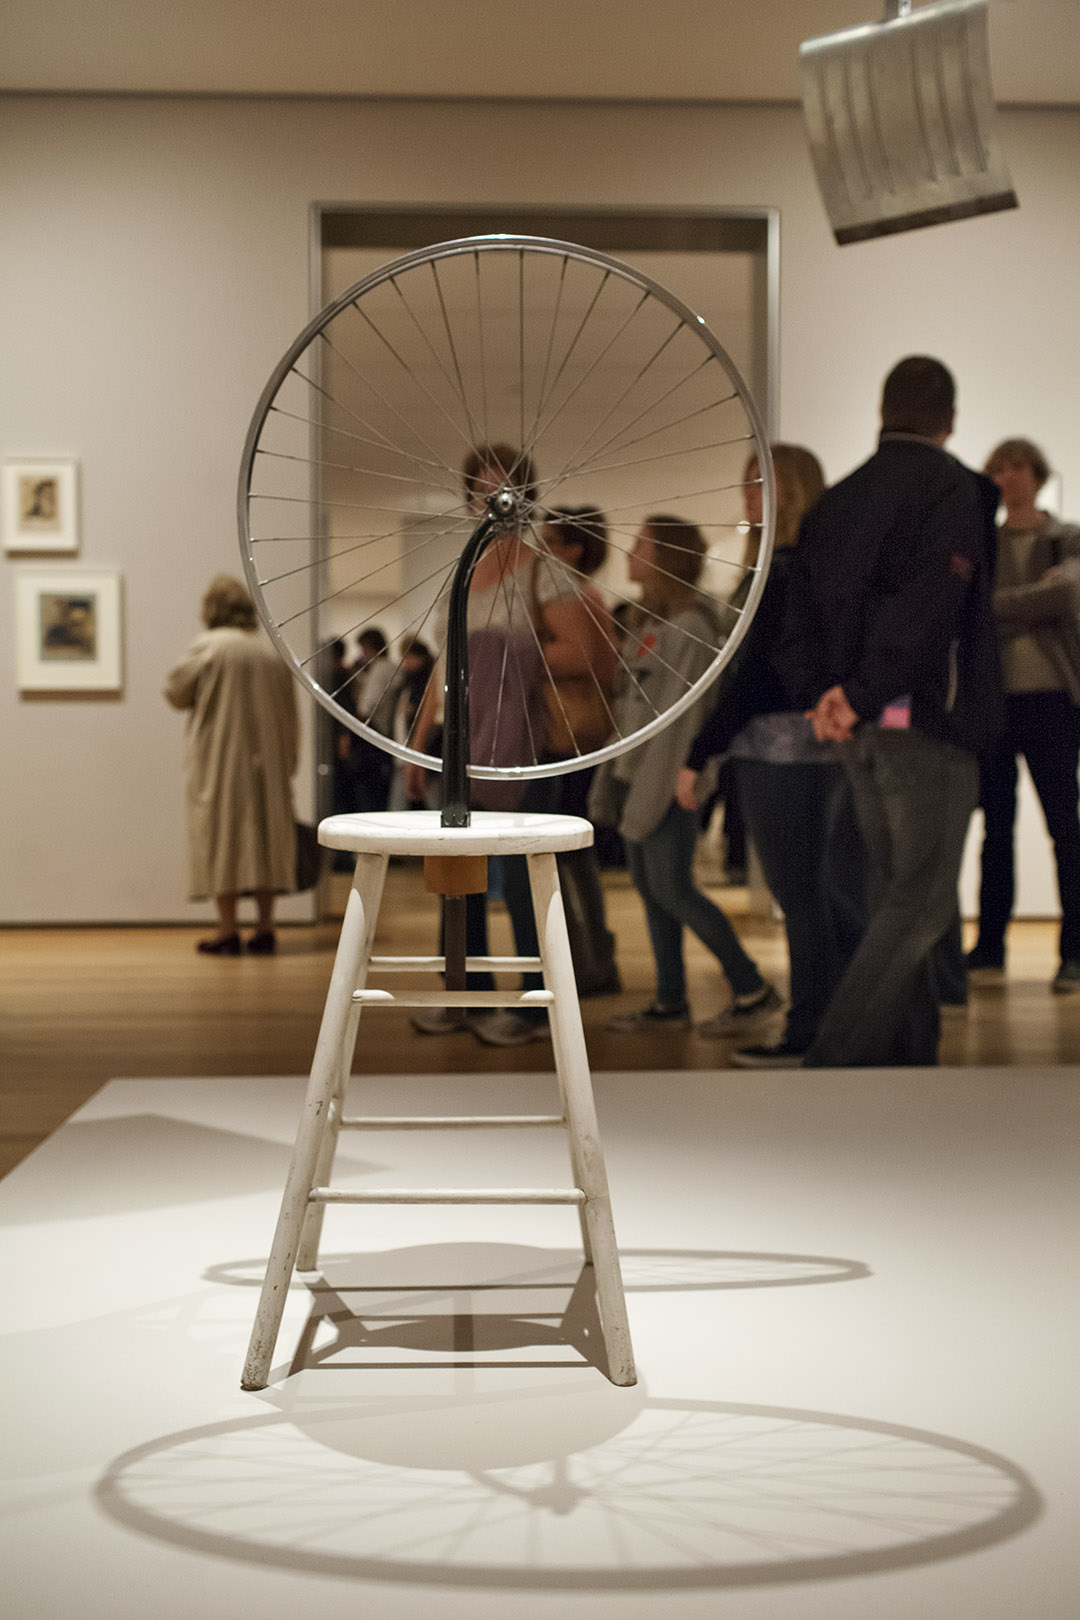 _nf - NewYork, MoMA - Marcel Duchamp - Bicycle Wheel